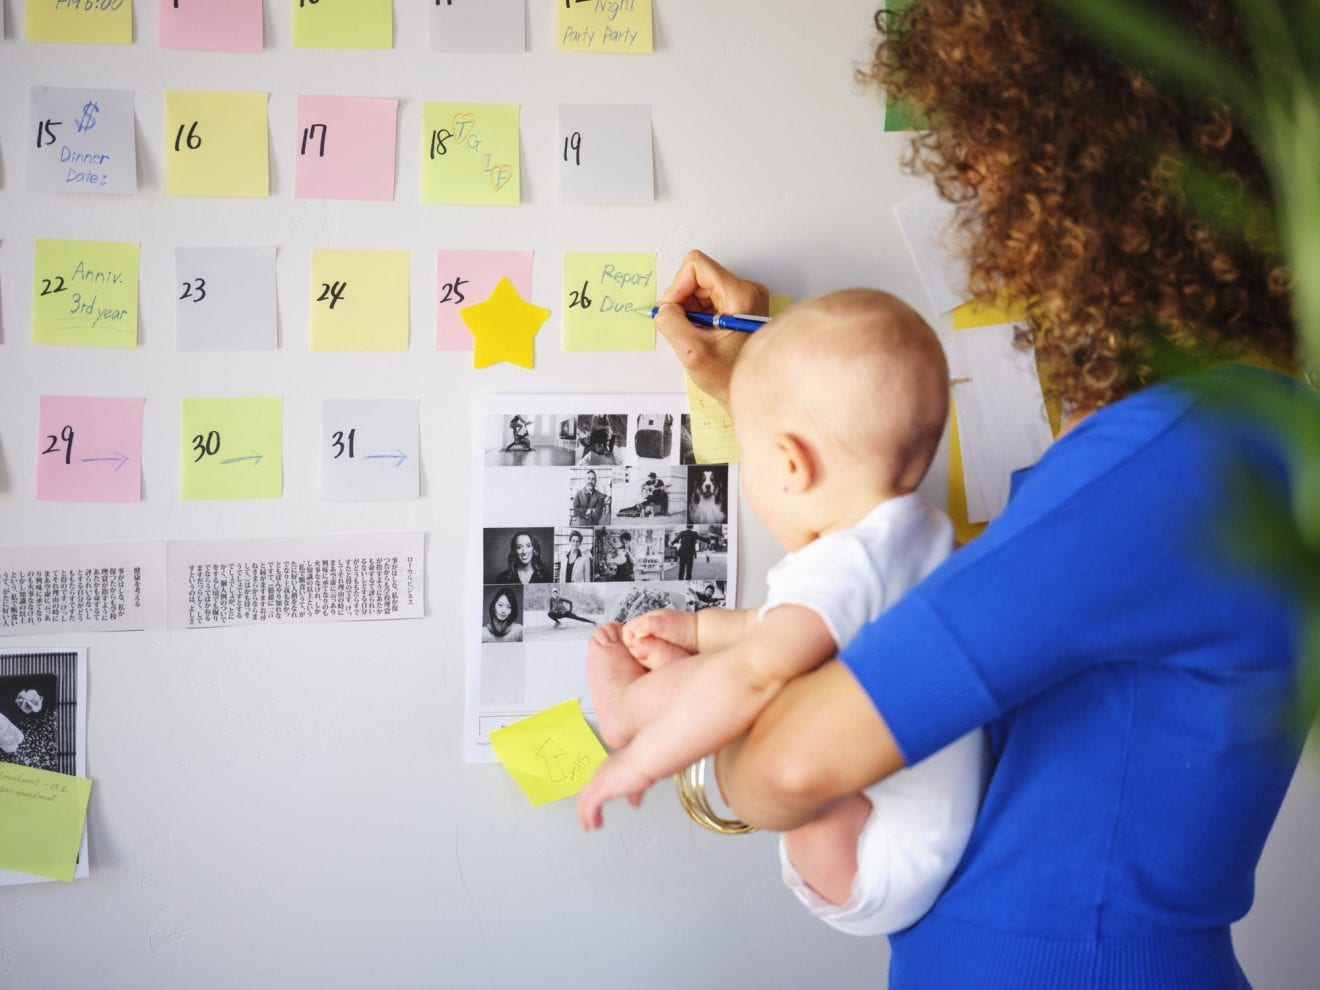 Working Mother Balancing Baby and Design Work